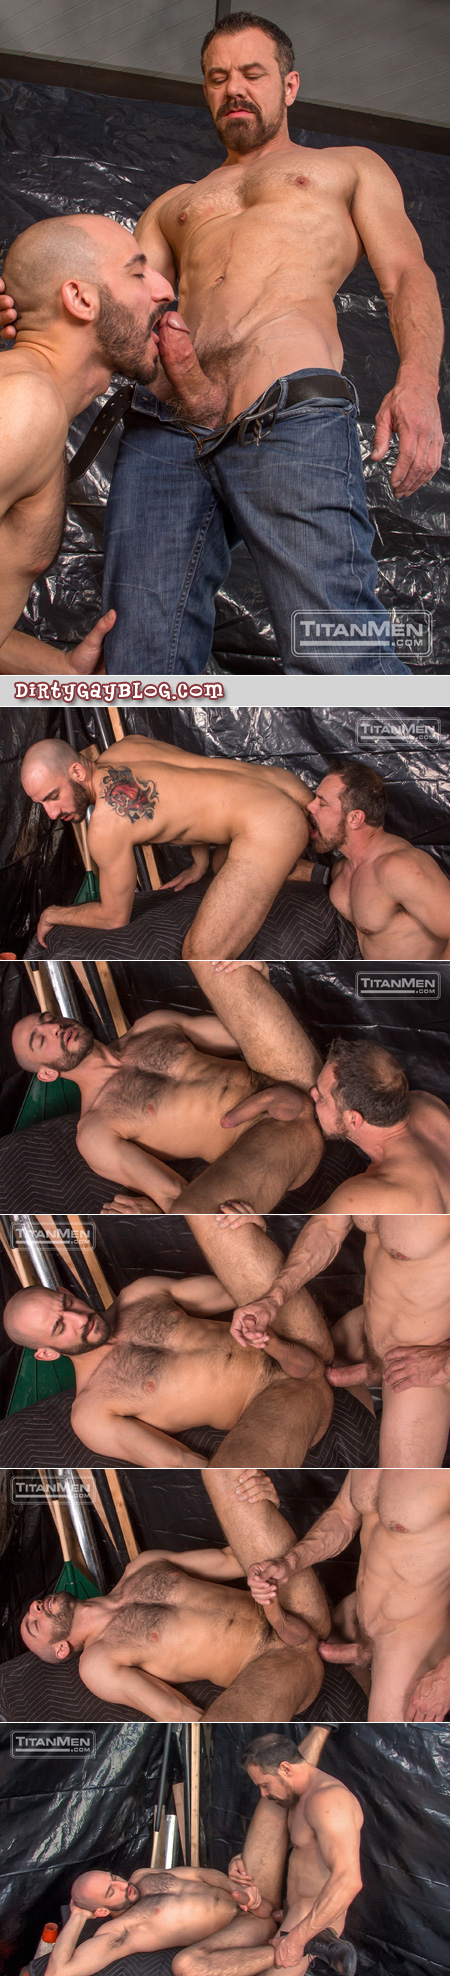 Bearded muscle Daddy fucks an extremely well-hung bottom with his big dick.